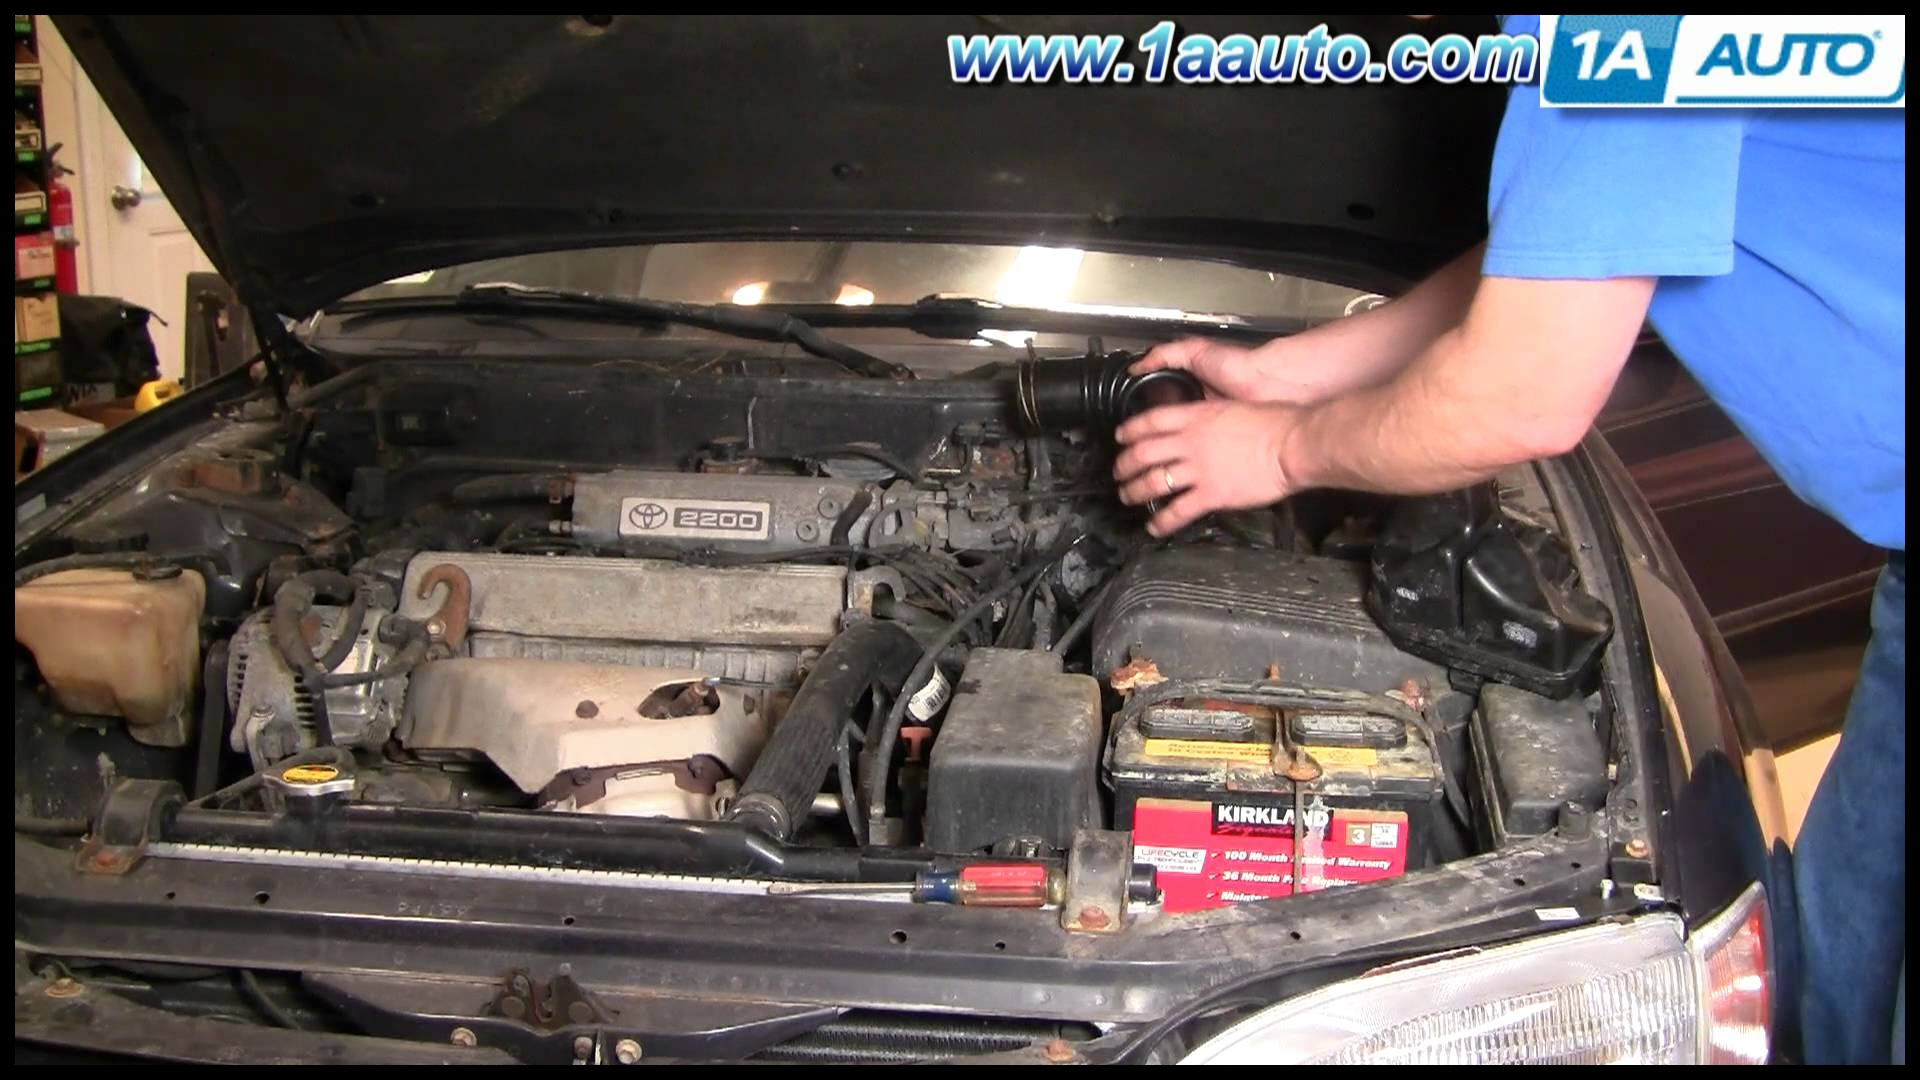 2005 toyota Camry Timing Belt Replacement Cost How to Install Replace Engine Air Intake Hose toyota